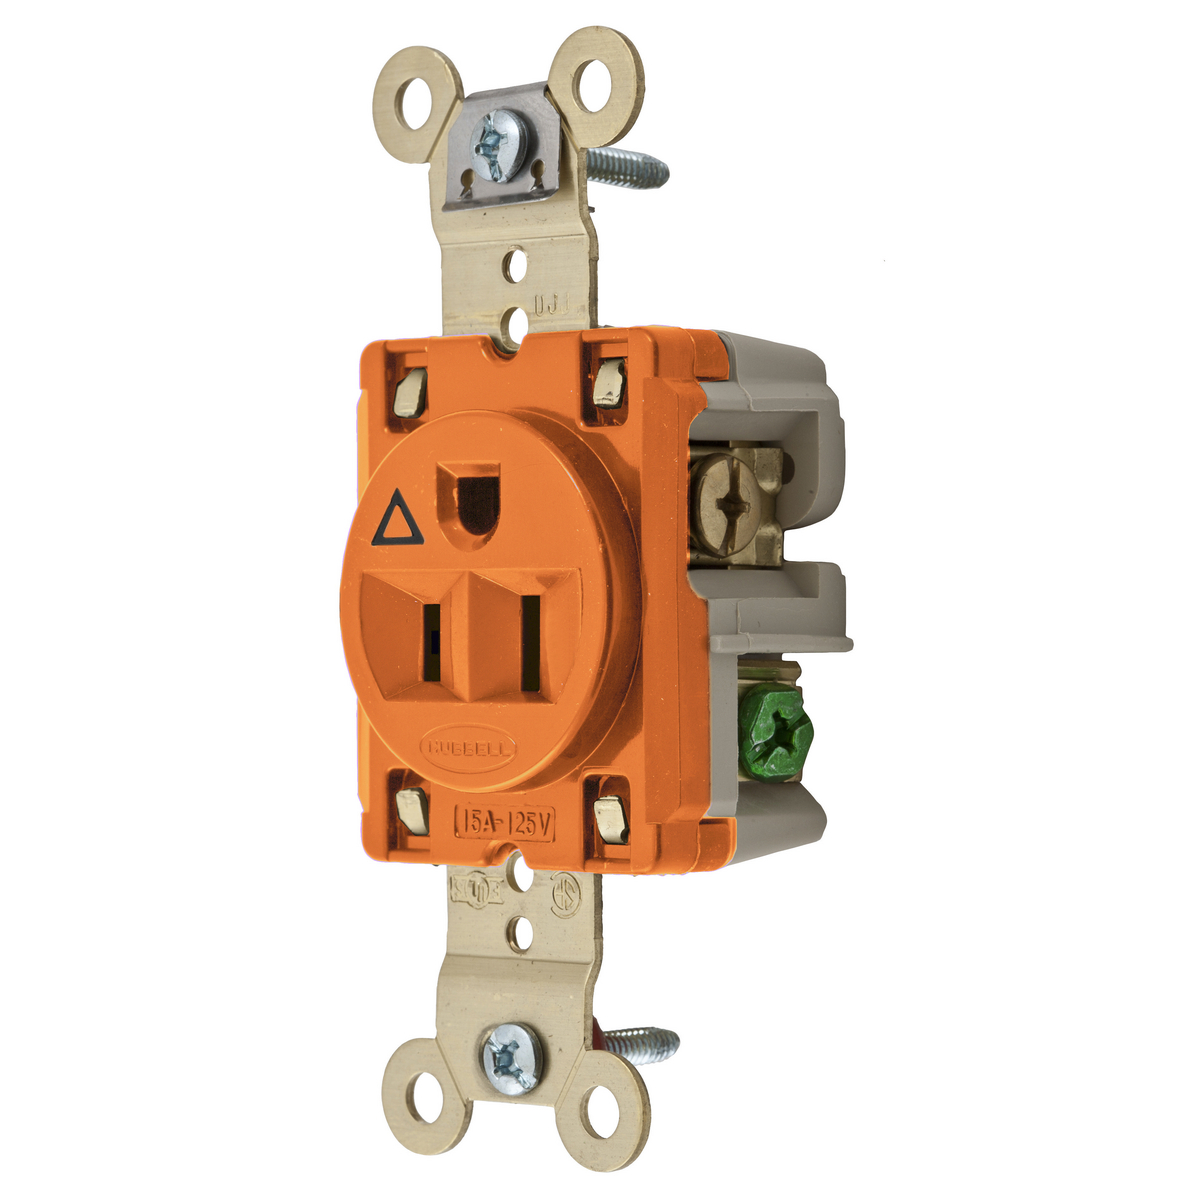 Hubbell IG5261 15 Amp 125 Volt 2-Pole 3-Wire NEMA 5-15R Orange Straight Blade Isolated Ground Single Receptacle